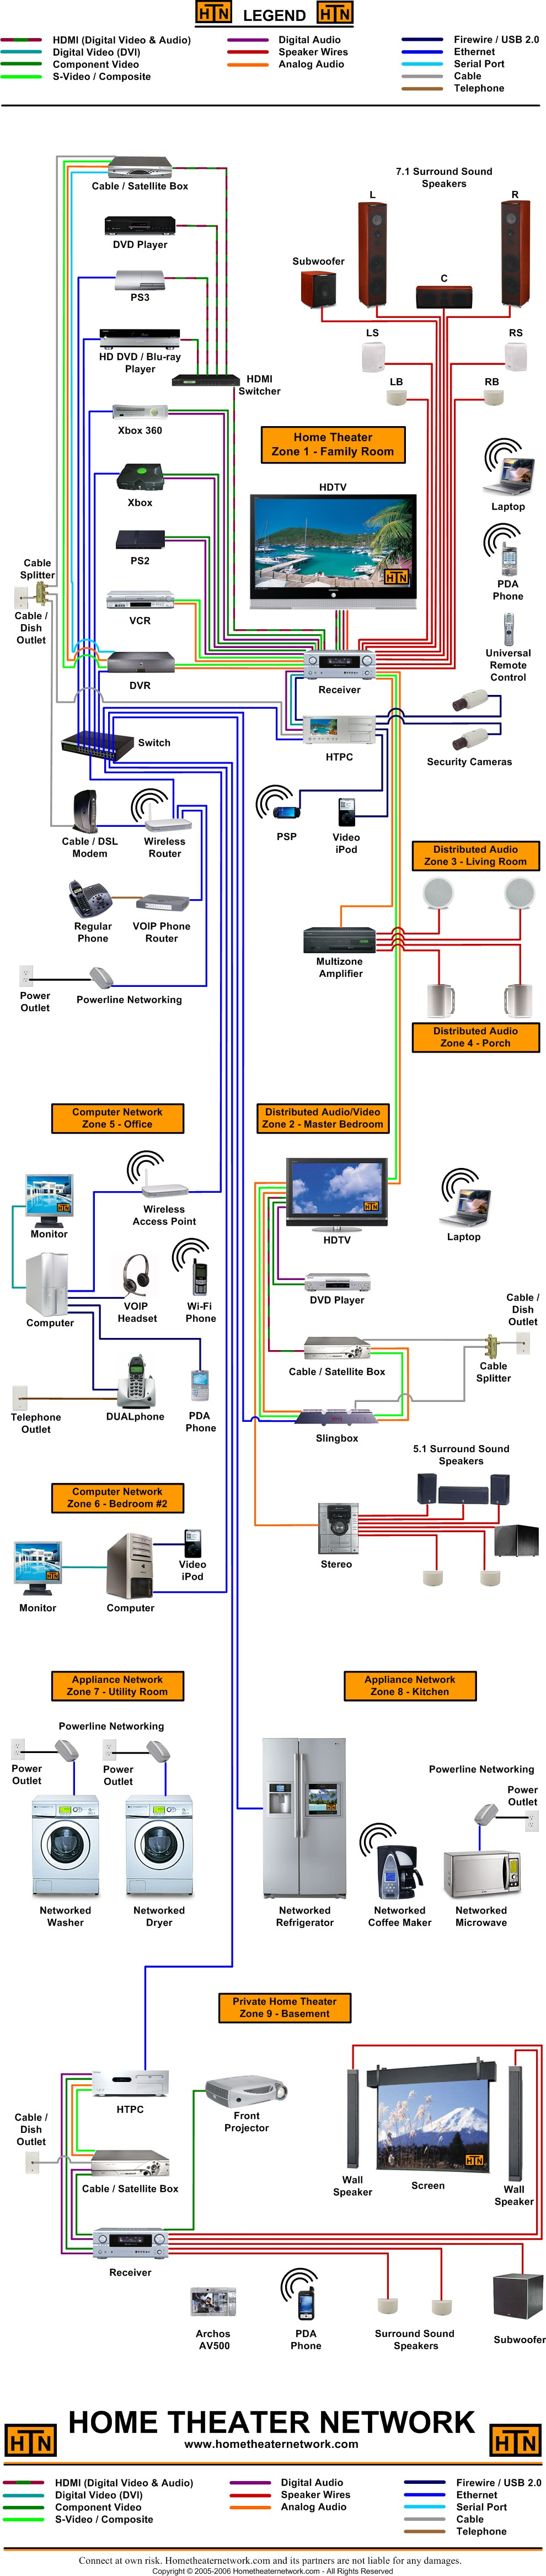 medium resolution of home theater network s large block diagram car stereo system diagram home audio diagram